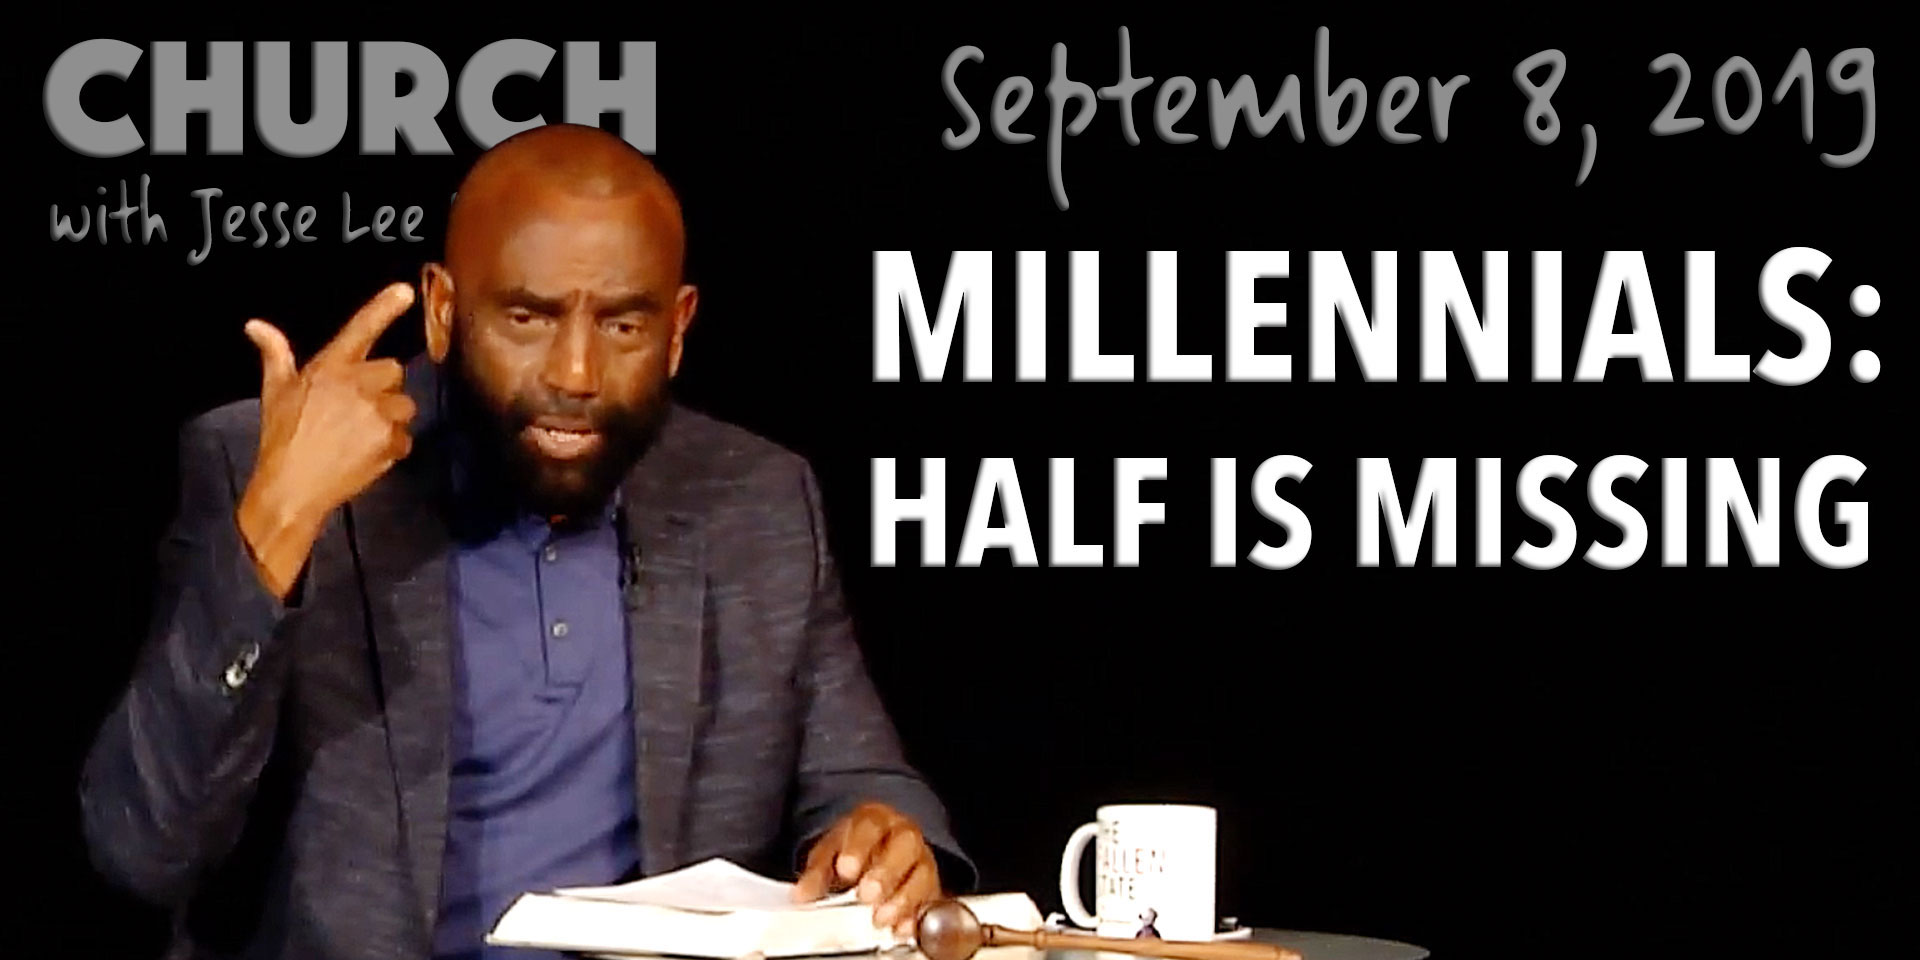 Millennials: Half Is Missing (Sept 8, 2019)